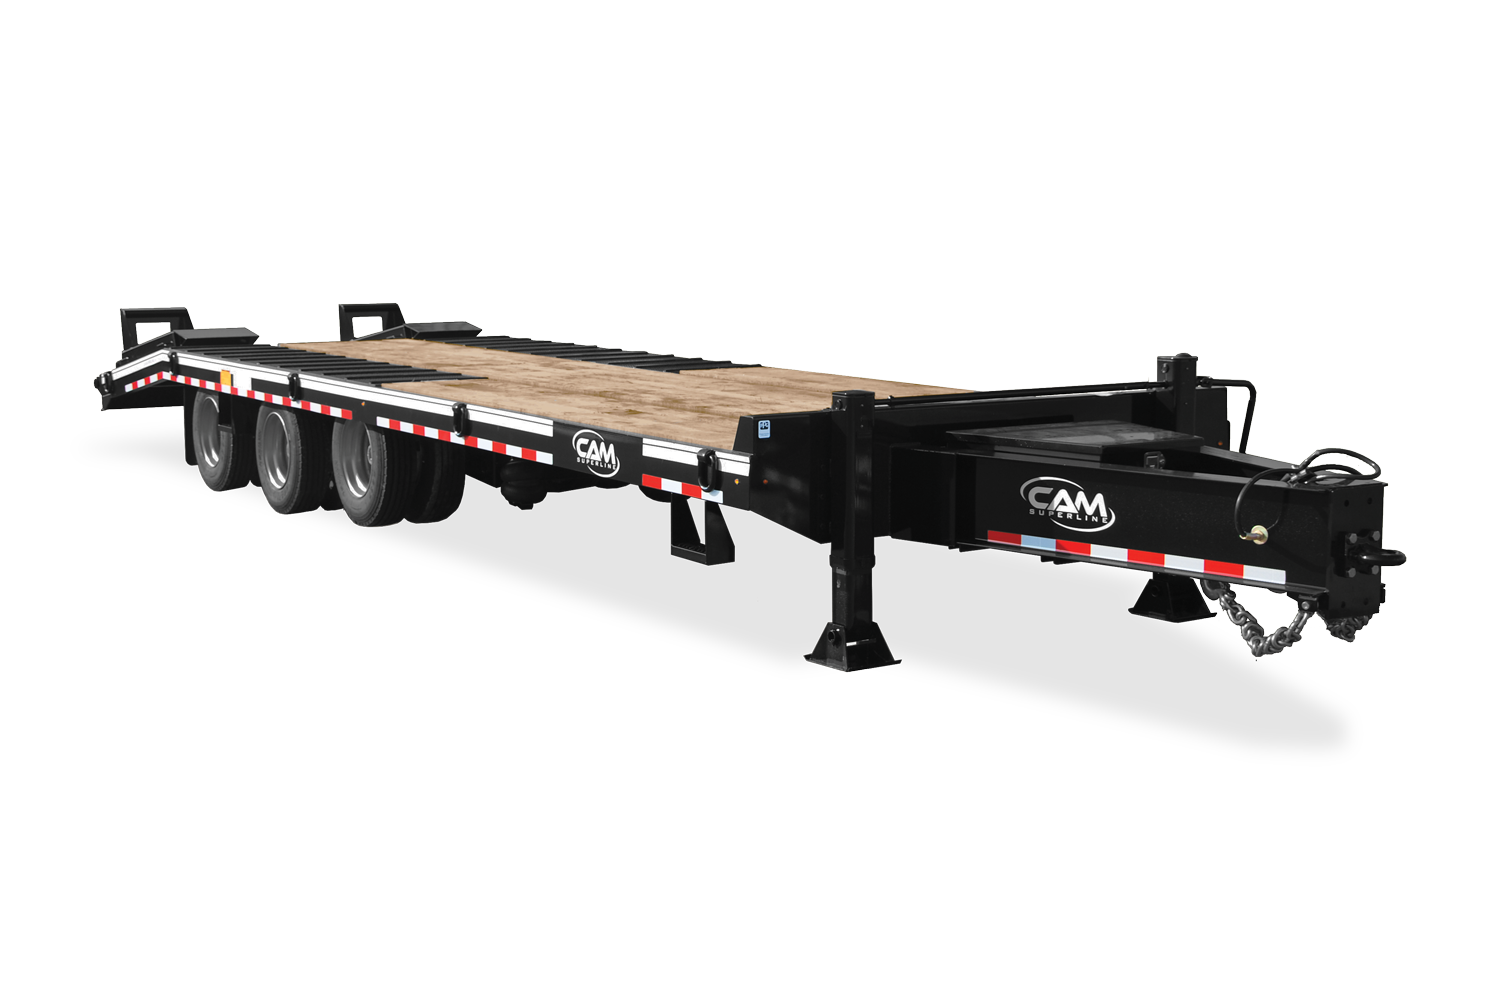 "2021 Cam Superline 25 Ton Deckover Heavy Duty Trailer 102"" X 24' FLAT + 7' 6"" DOUBLE BREAK B/T."